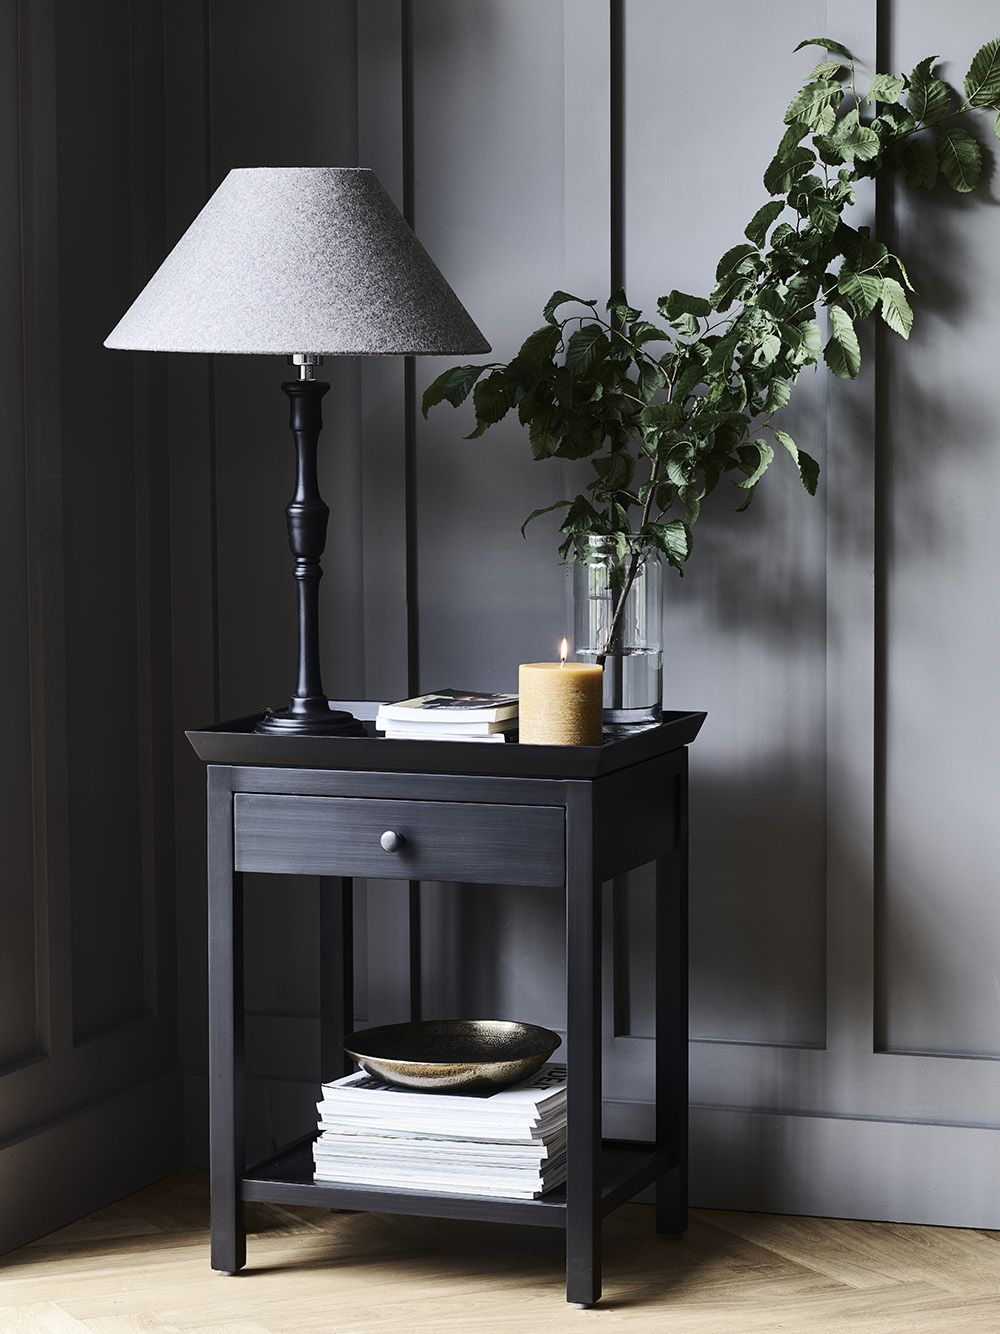 Aldwych side table, Fitzroy lamp with Oliver shade, Blyton